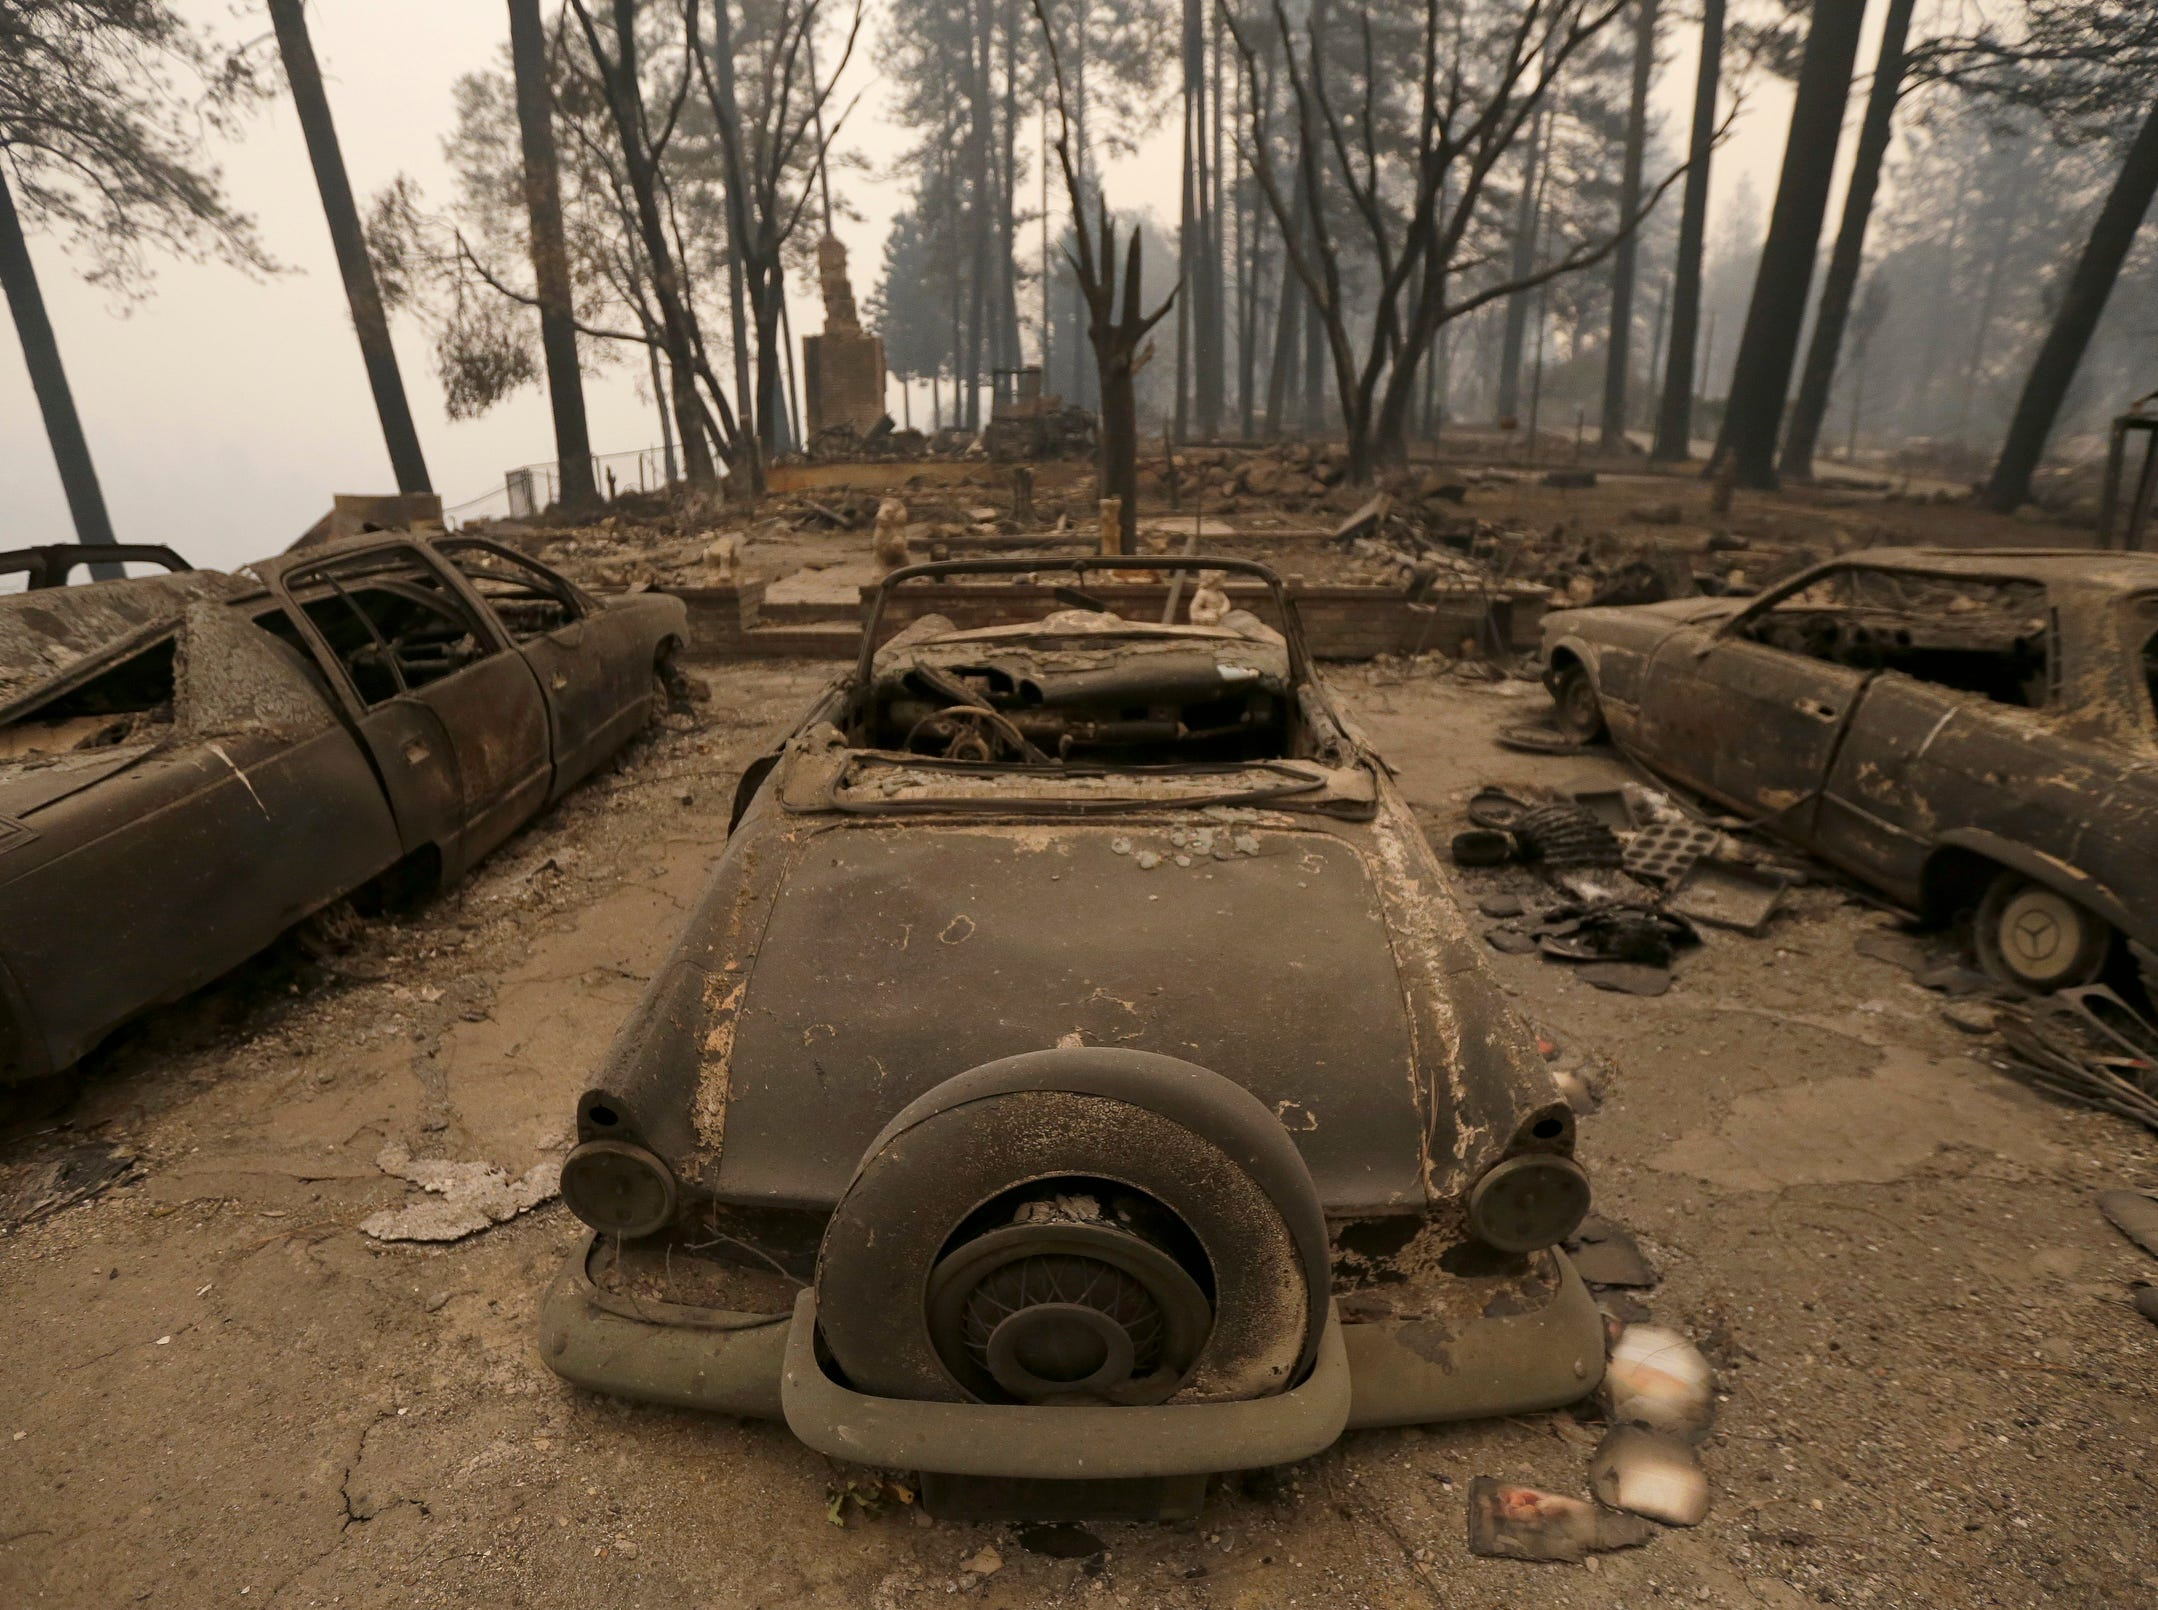 Three cars destroyed by a wildfire sit at a burned out home Friday, in Paradise, Calif. Authorities have confirmed that at least six people have died in the fire that has consumed more than 70,000 acres and destroyed at least 2,000 structures.